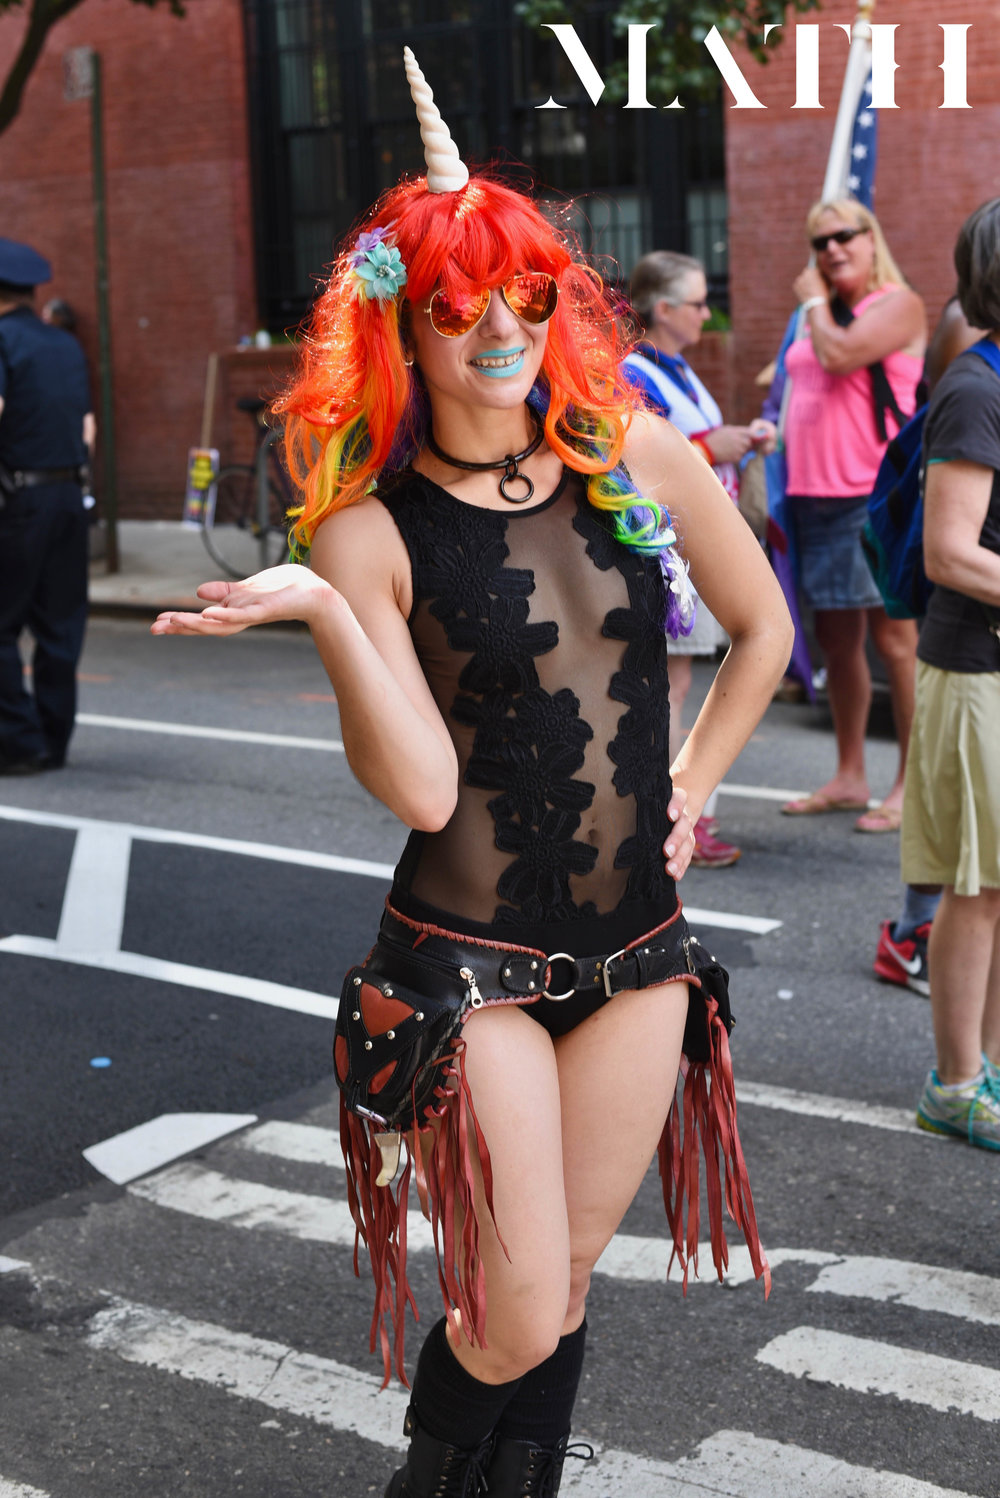 NYC Pride_Ginger Hollander 11.jpg